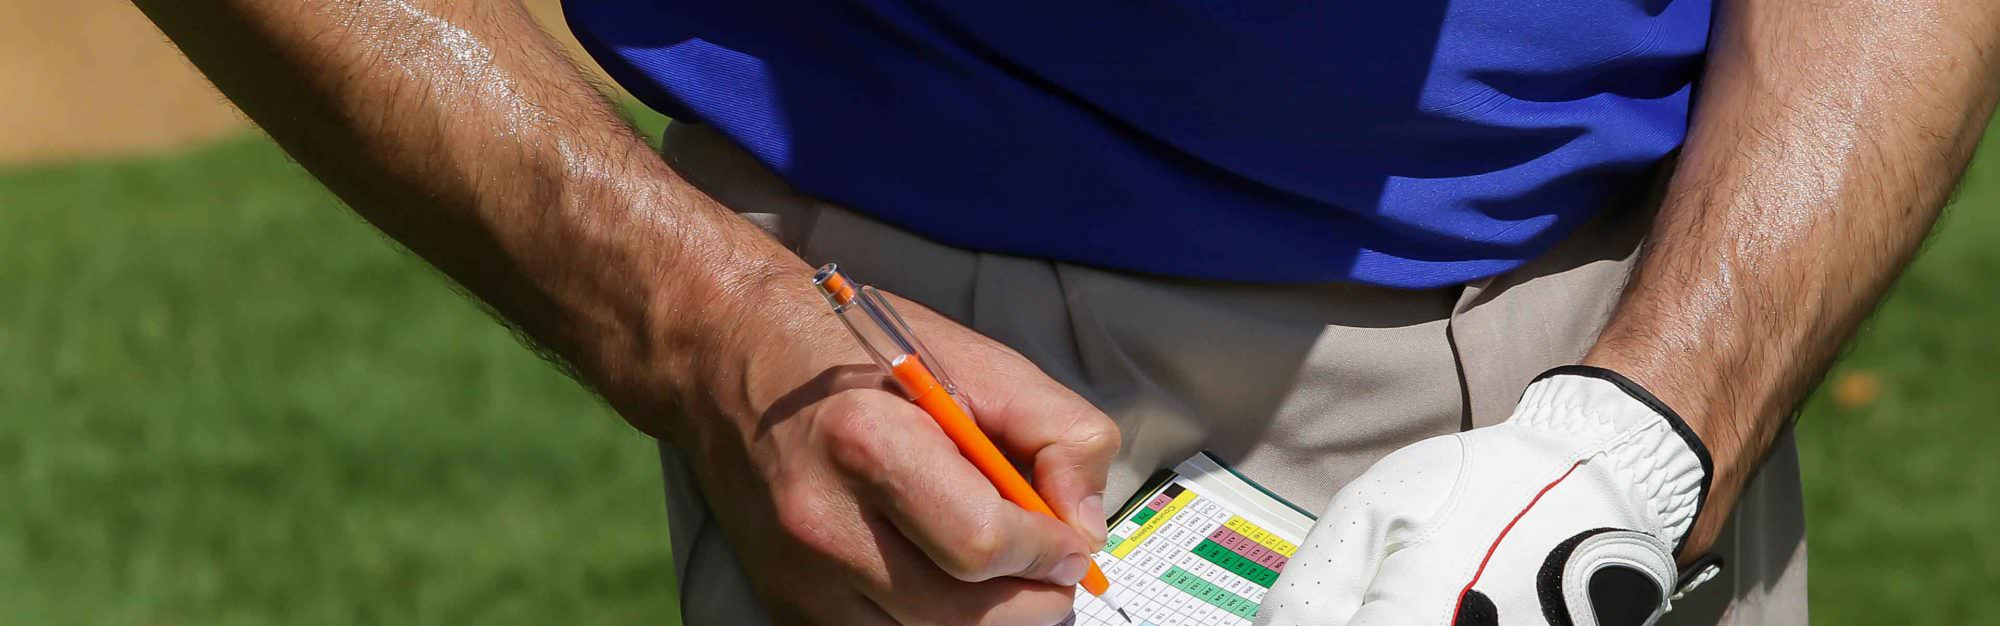 Thinking of not handing in your scorecard? You could lose your handicap